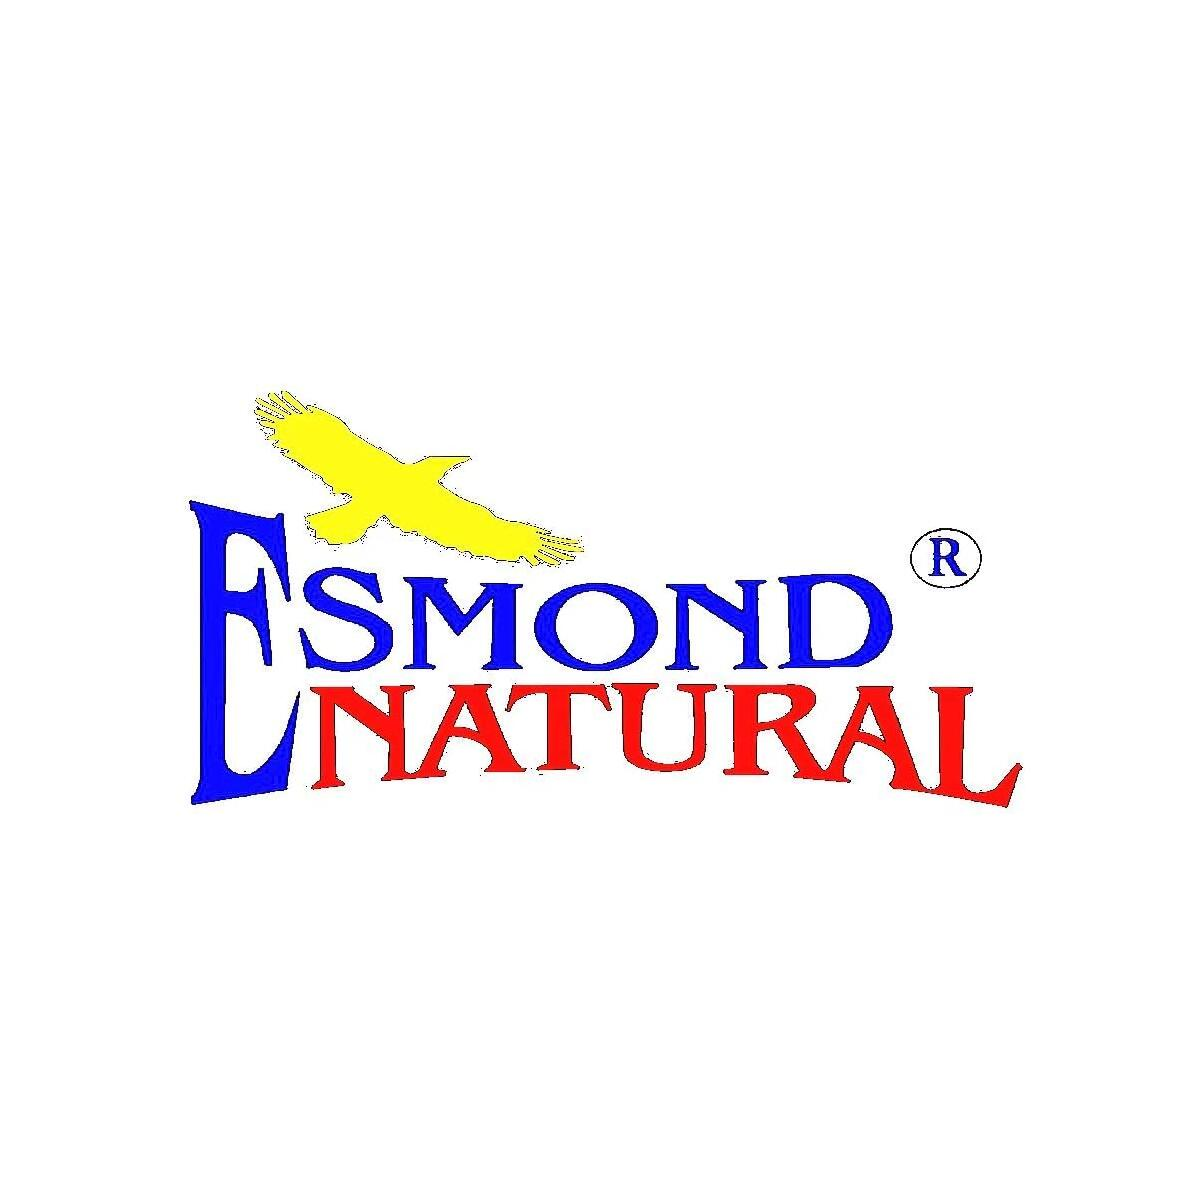 (5 Count, 25% Off) Esmond Natural: ENC Milk Minerals Complex (Bone Support), GMP, Natural Product Assn Certified, Made in USA-1500mg, 450 Tablets